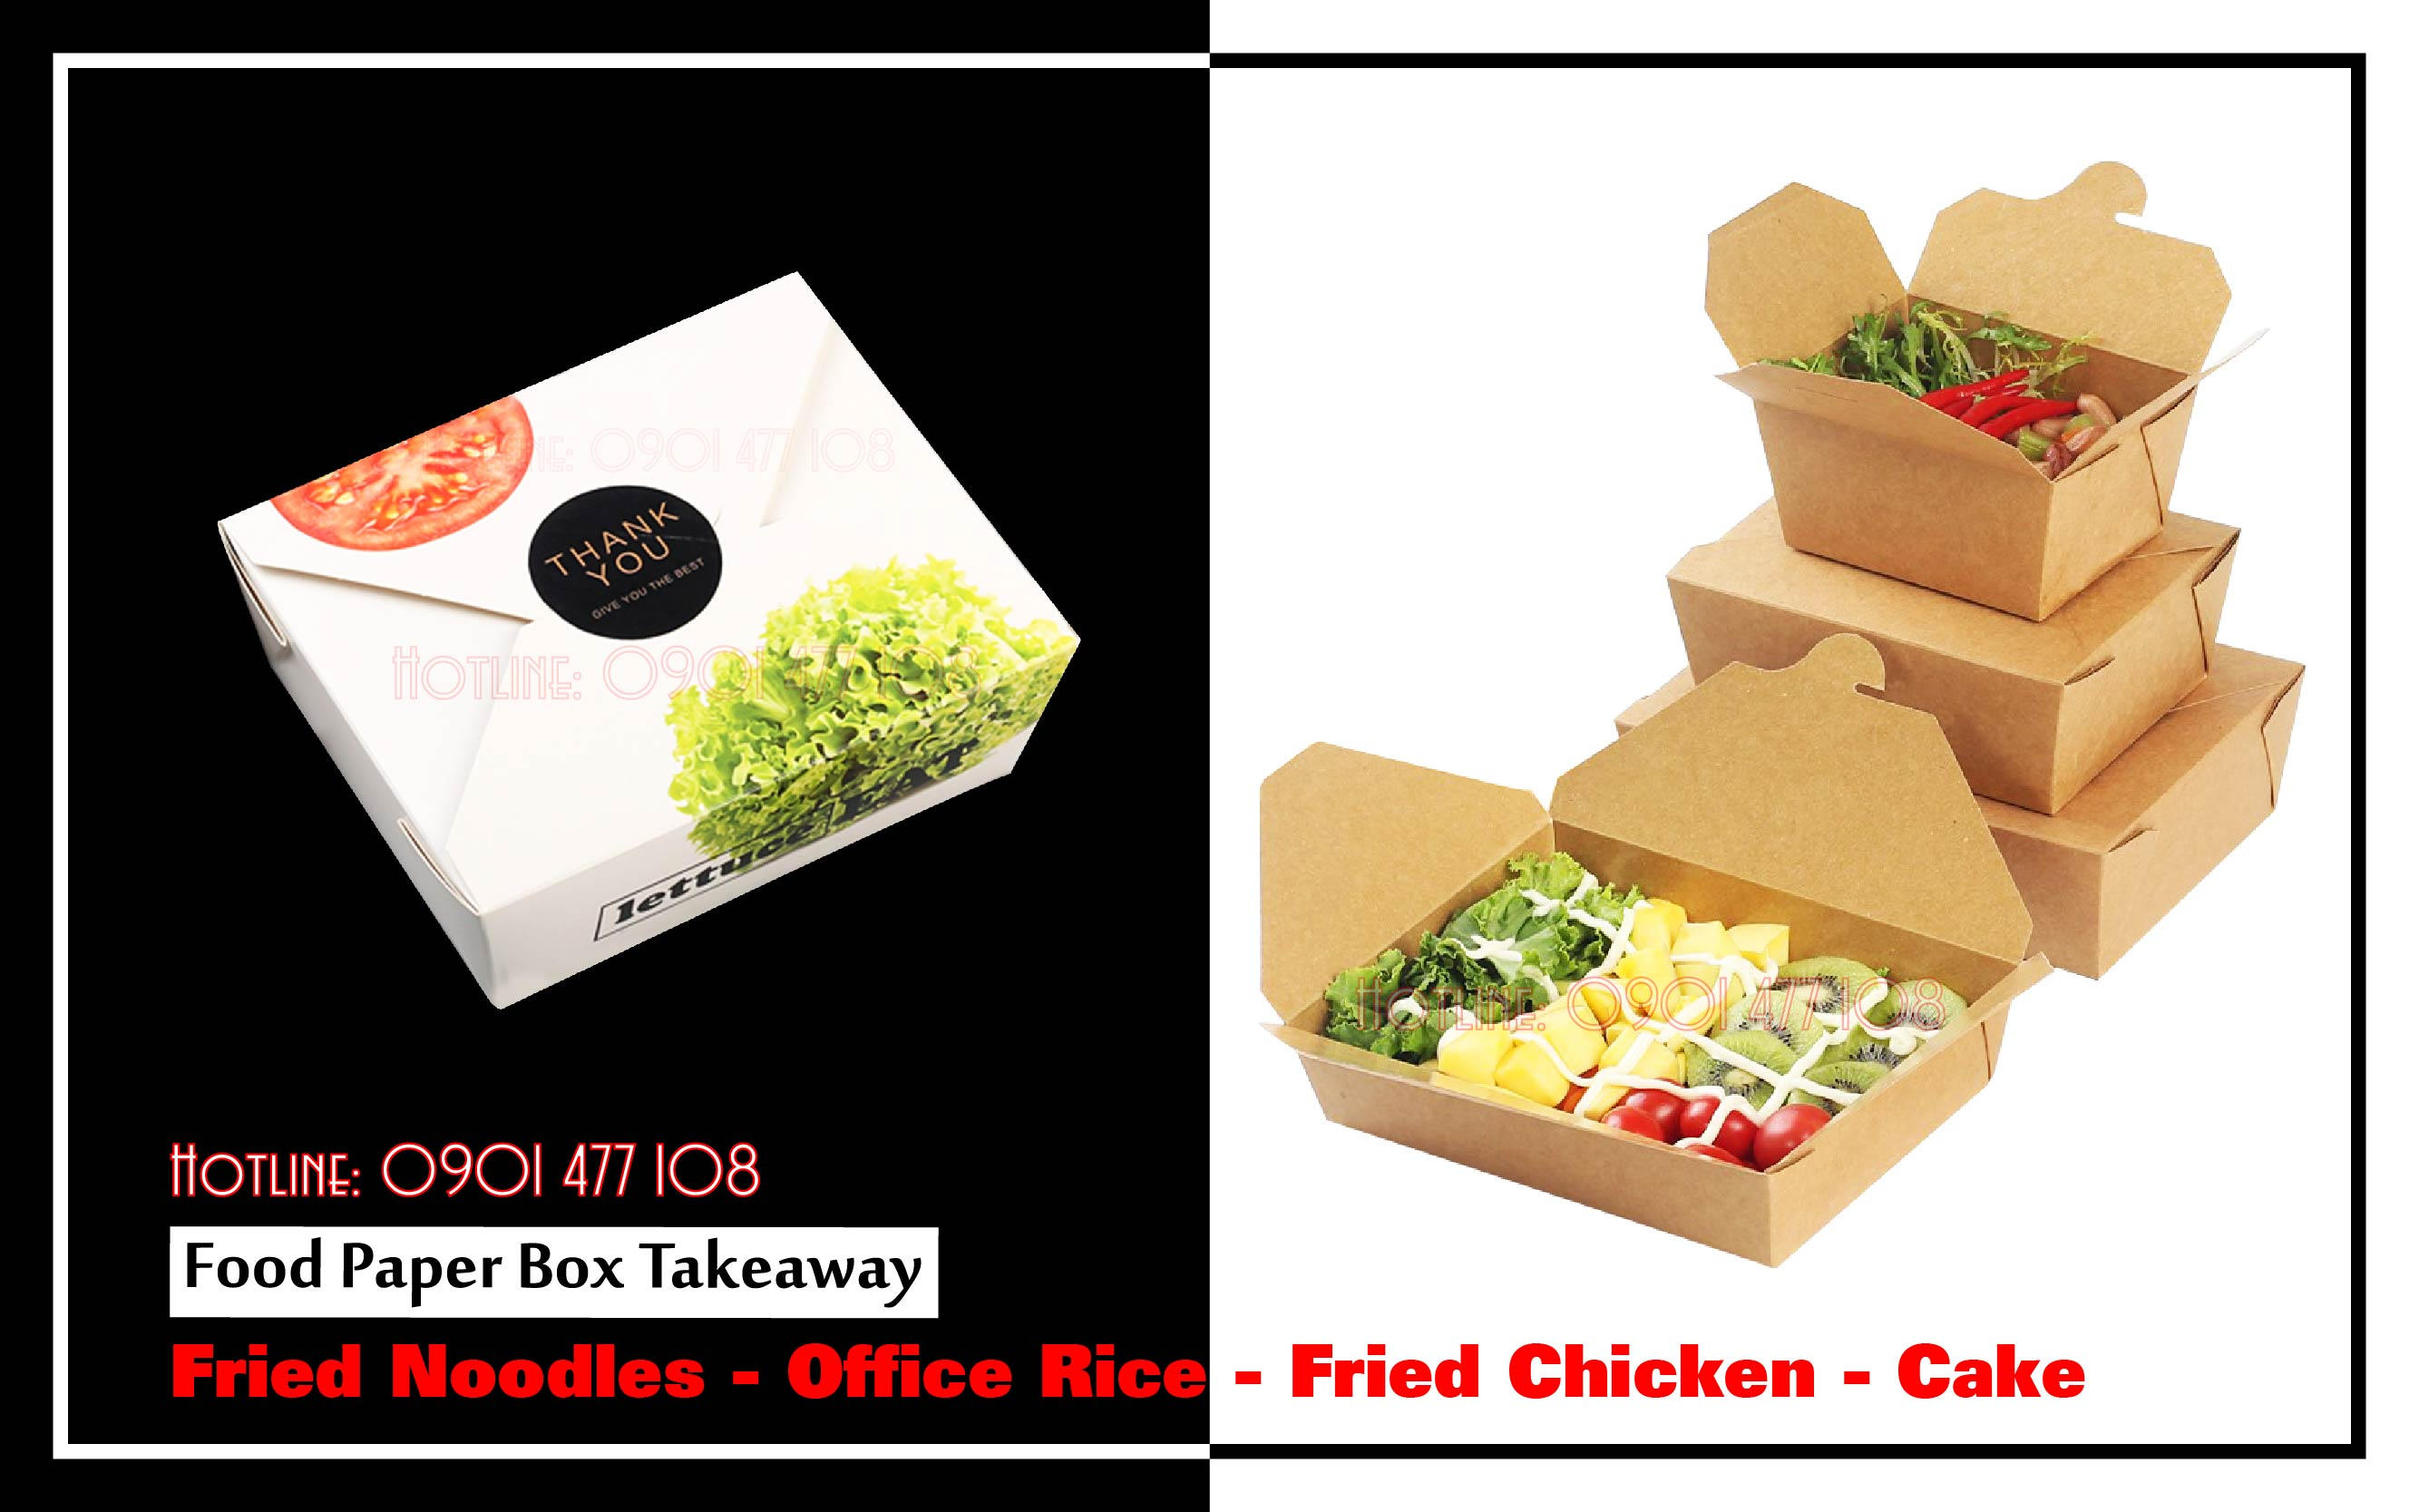 Food paper box takeaway | Fried Noodles - Office Rice - Fried Chicken - Cake